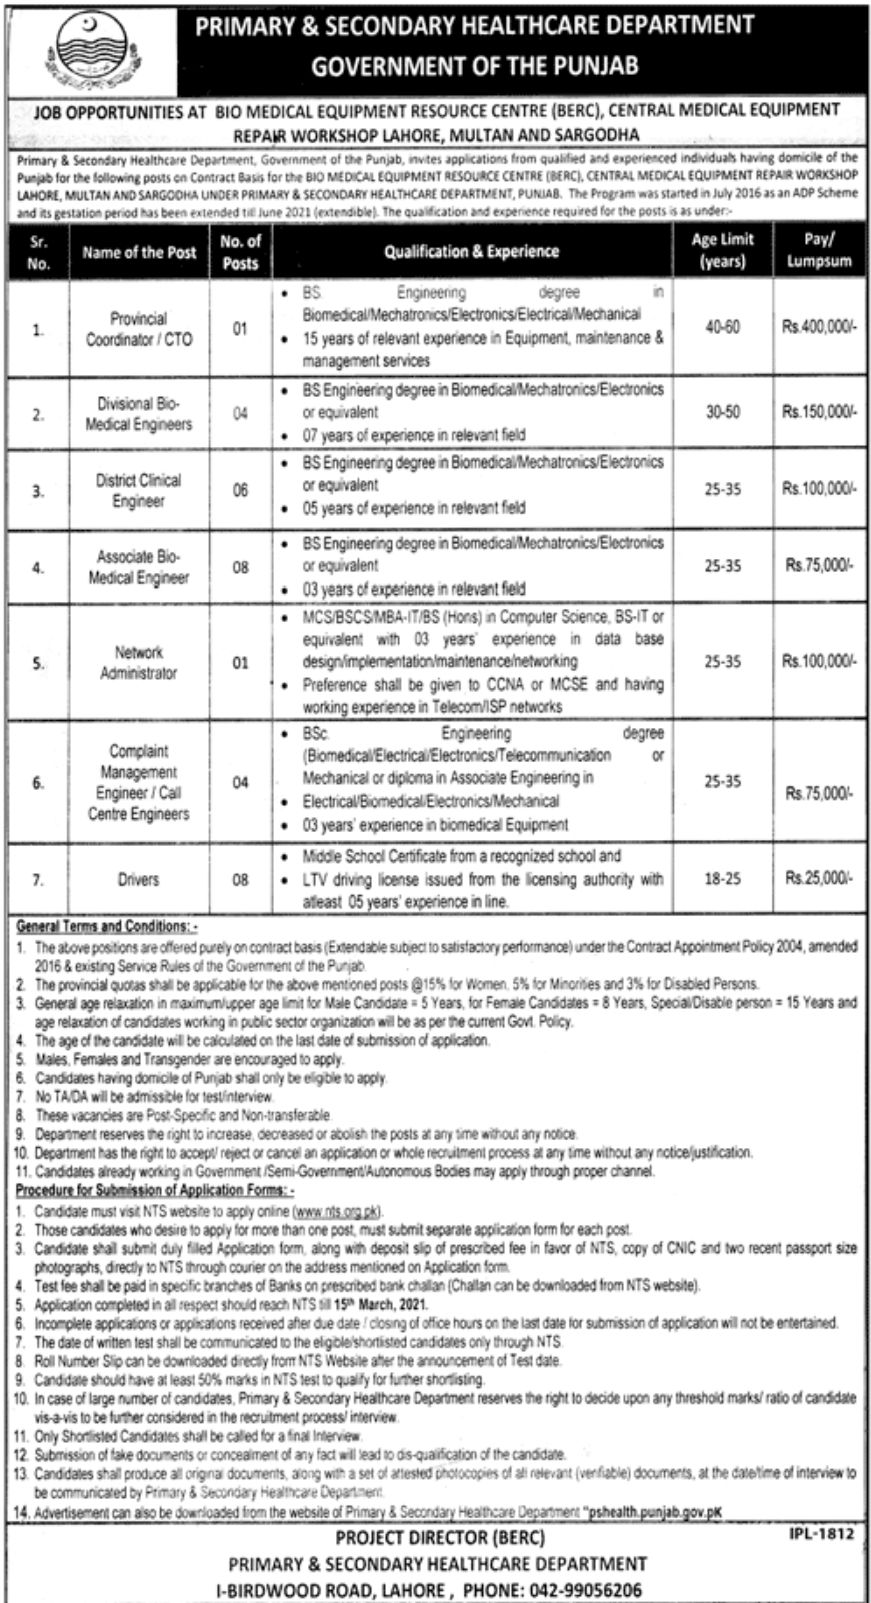 Government of the Punjab Primary & Secondary Healthcare Department Jobs February 2021